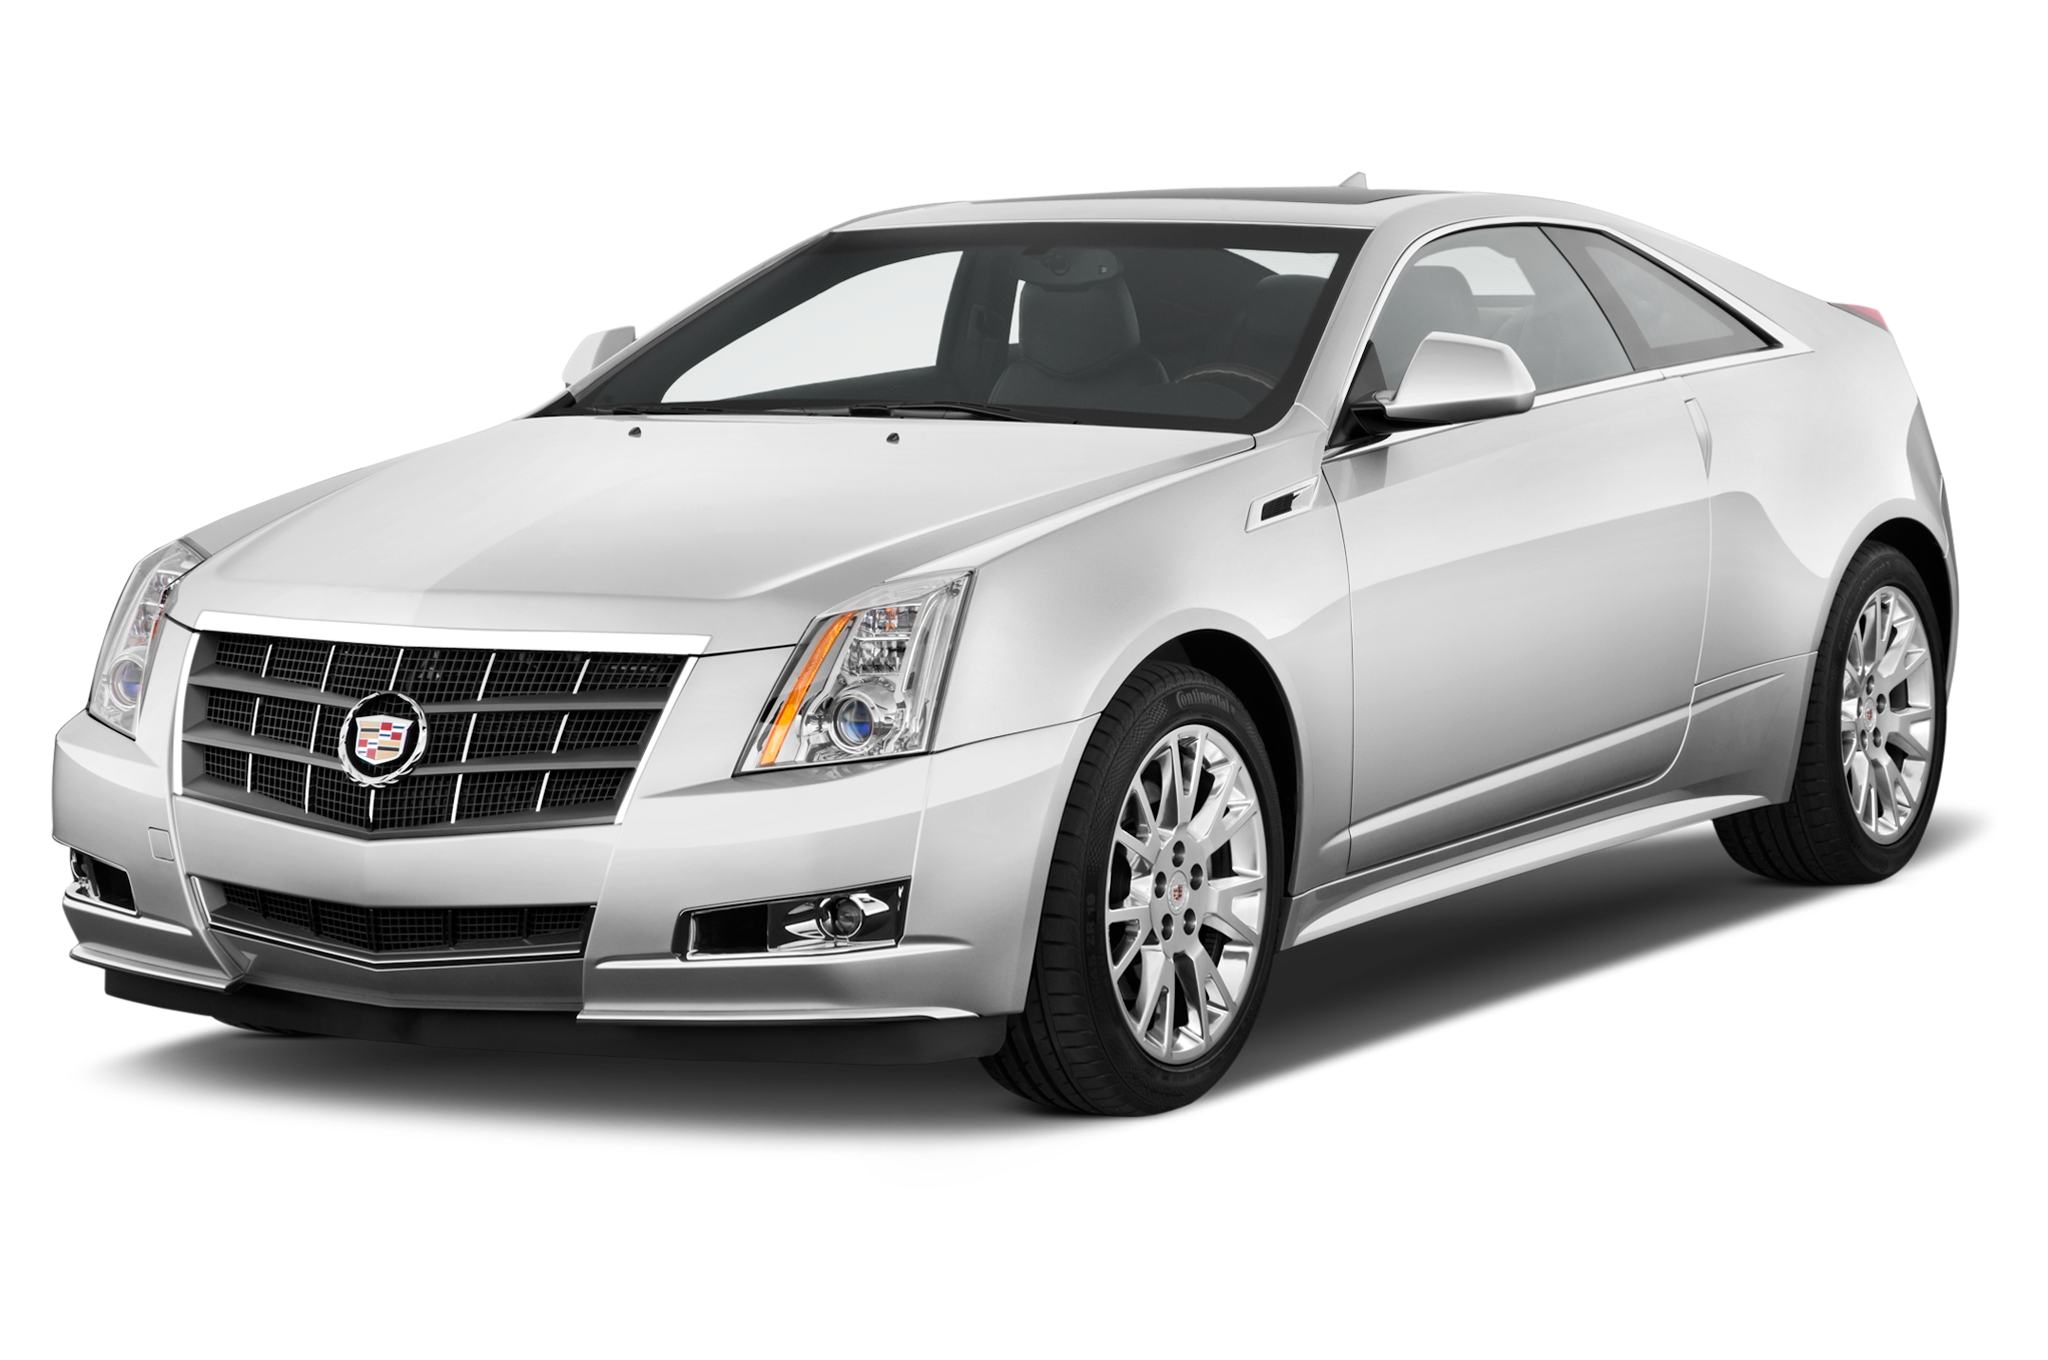 2011 Cadillac CTS Coupe - Cadillac Luxury Coupe Review - Automobile